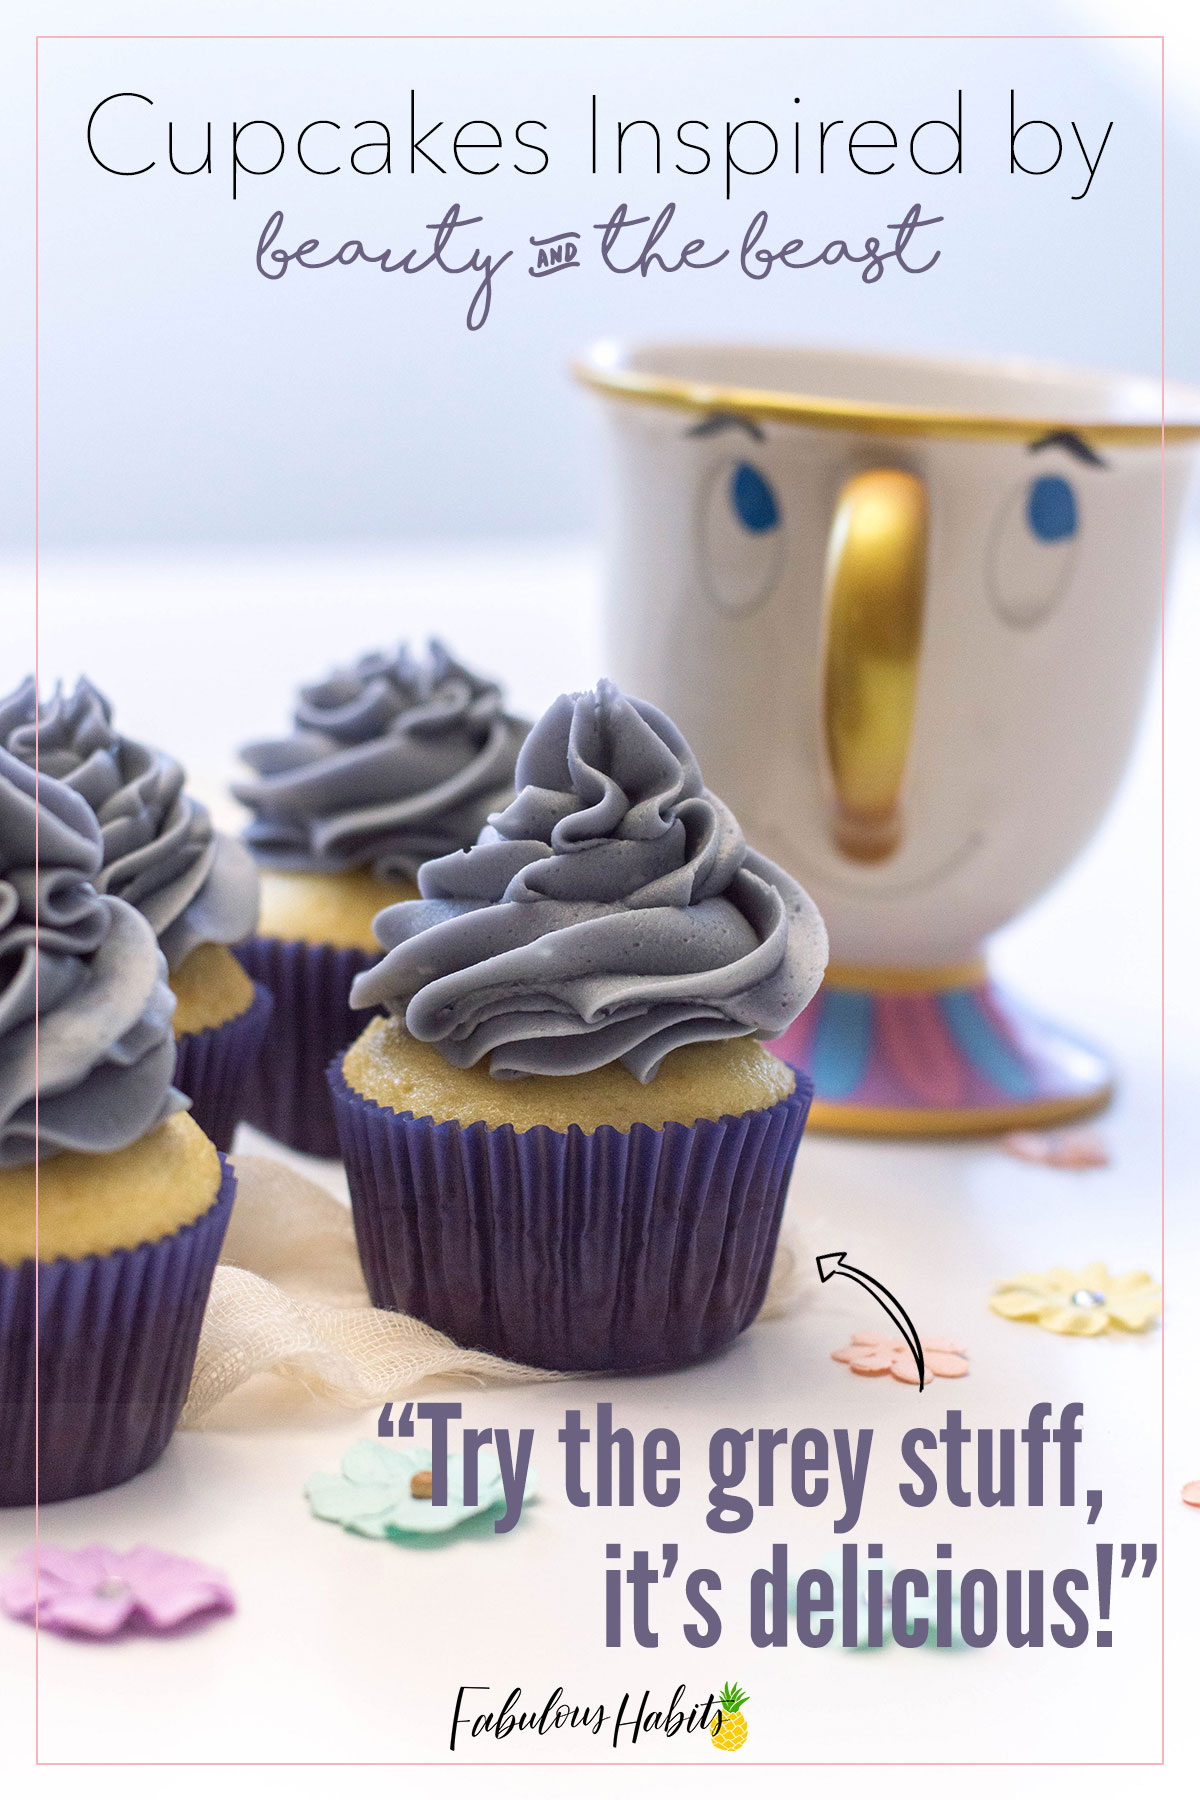 """Try the grey stuff, it's delicious!"" Here our take on 'the grey stuff' - made into cupcakes inspired by Beauty and the Beast! #beautyandthebeast"